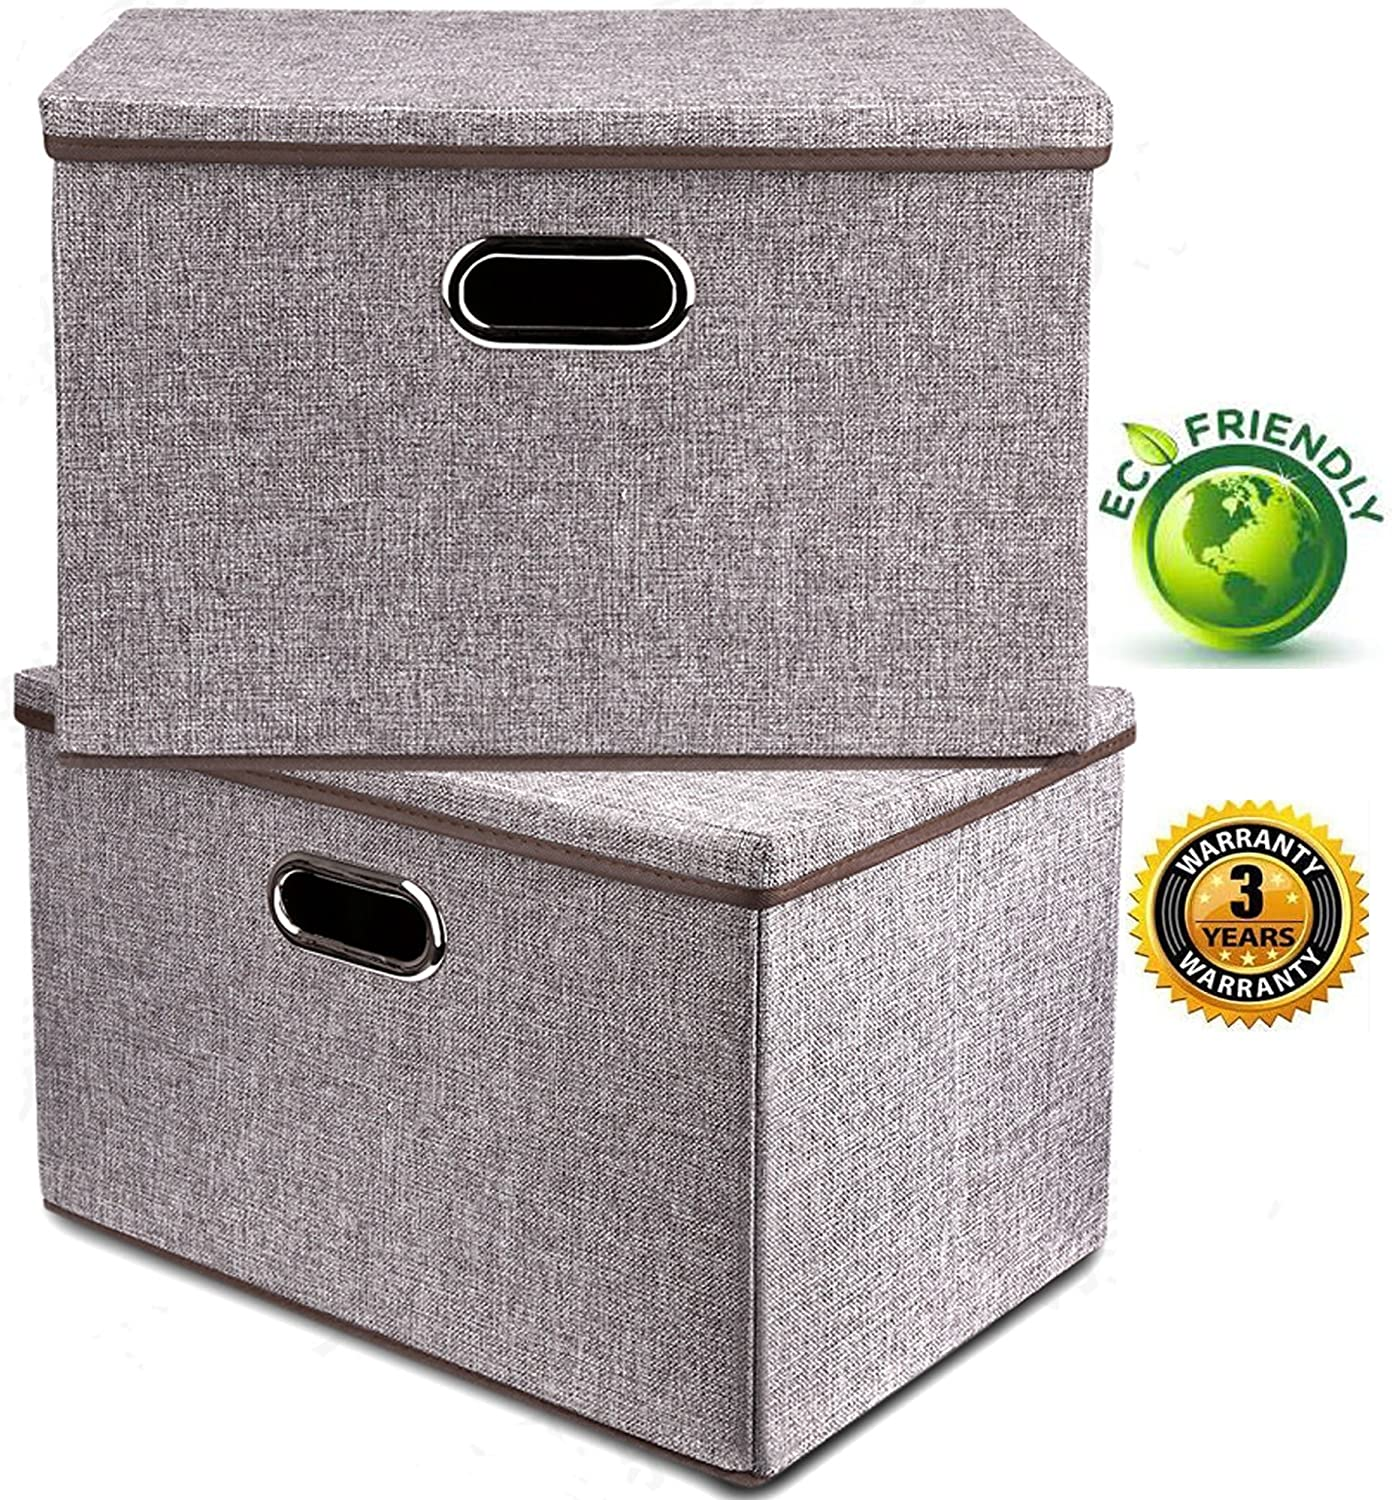 Large Linen Fabric Foldable Storage Container [2-Pack] with Removable Lid and Handles,Storage bin box cubes Organizer - Gray For Home, Office, Nursery, Closet, Bedroom, Living Room